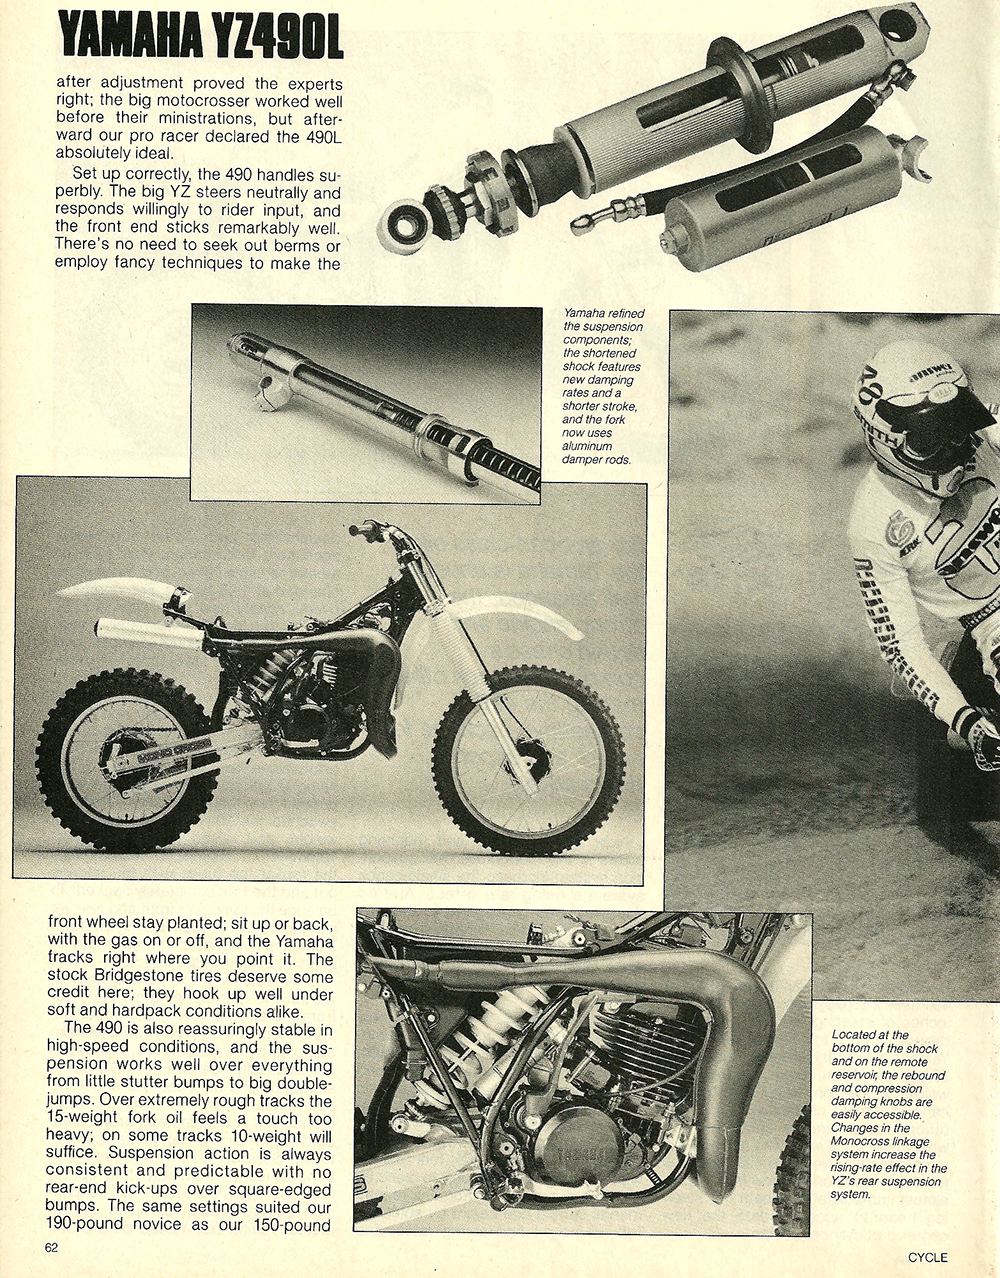 1984 Yamaha YZ490L off road test 5.jpg